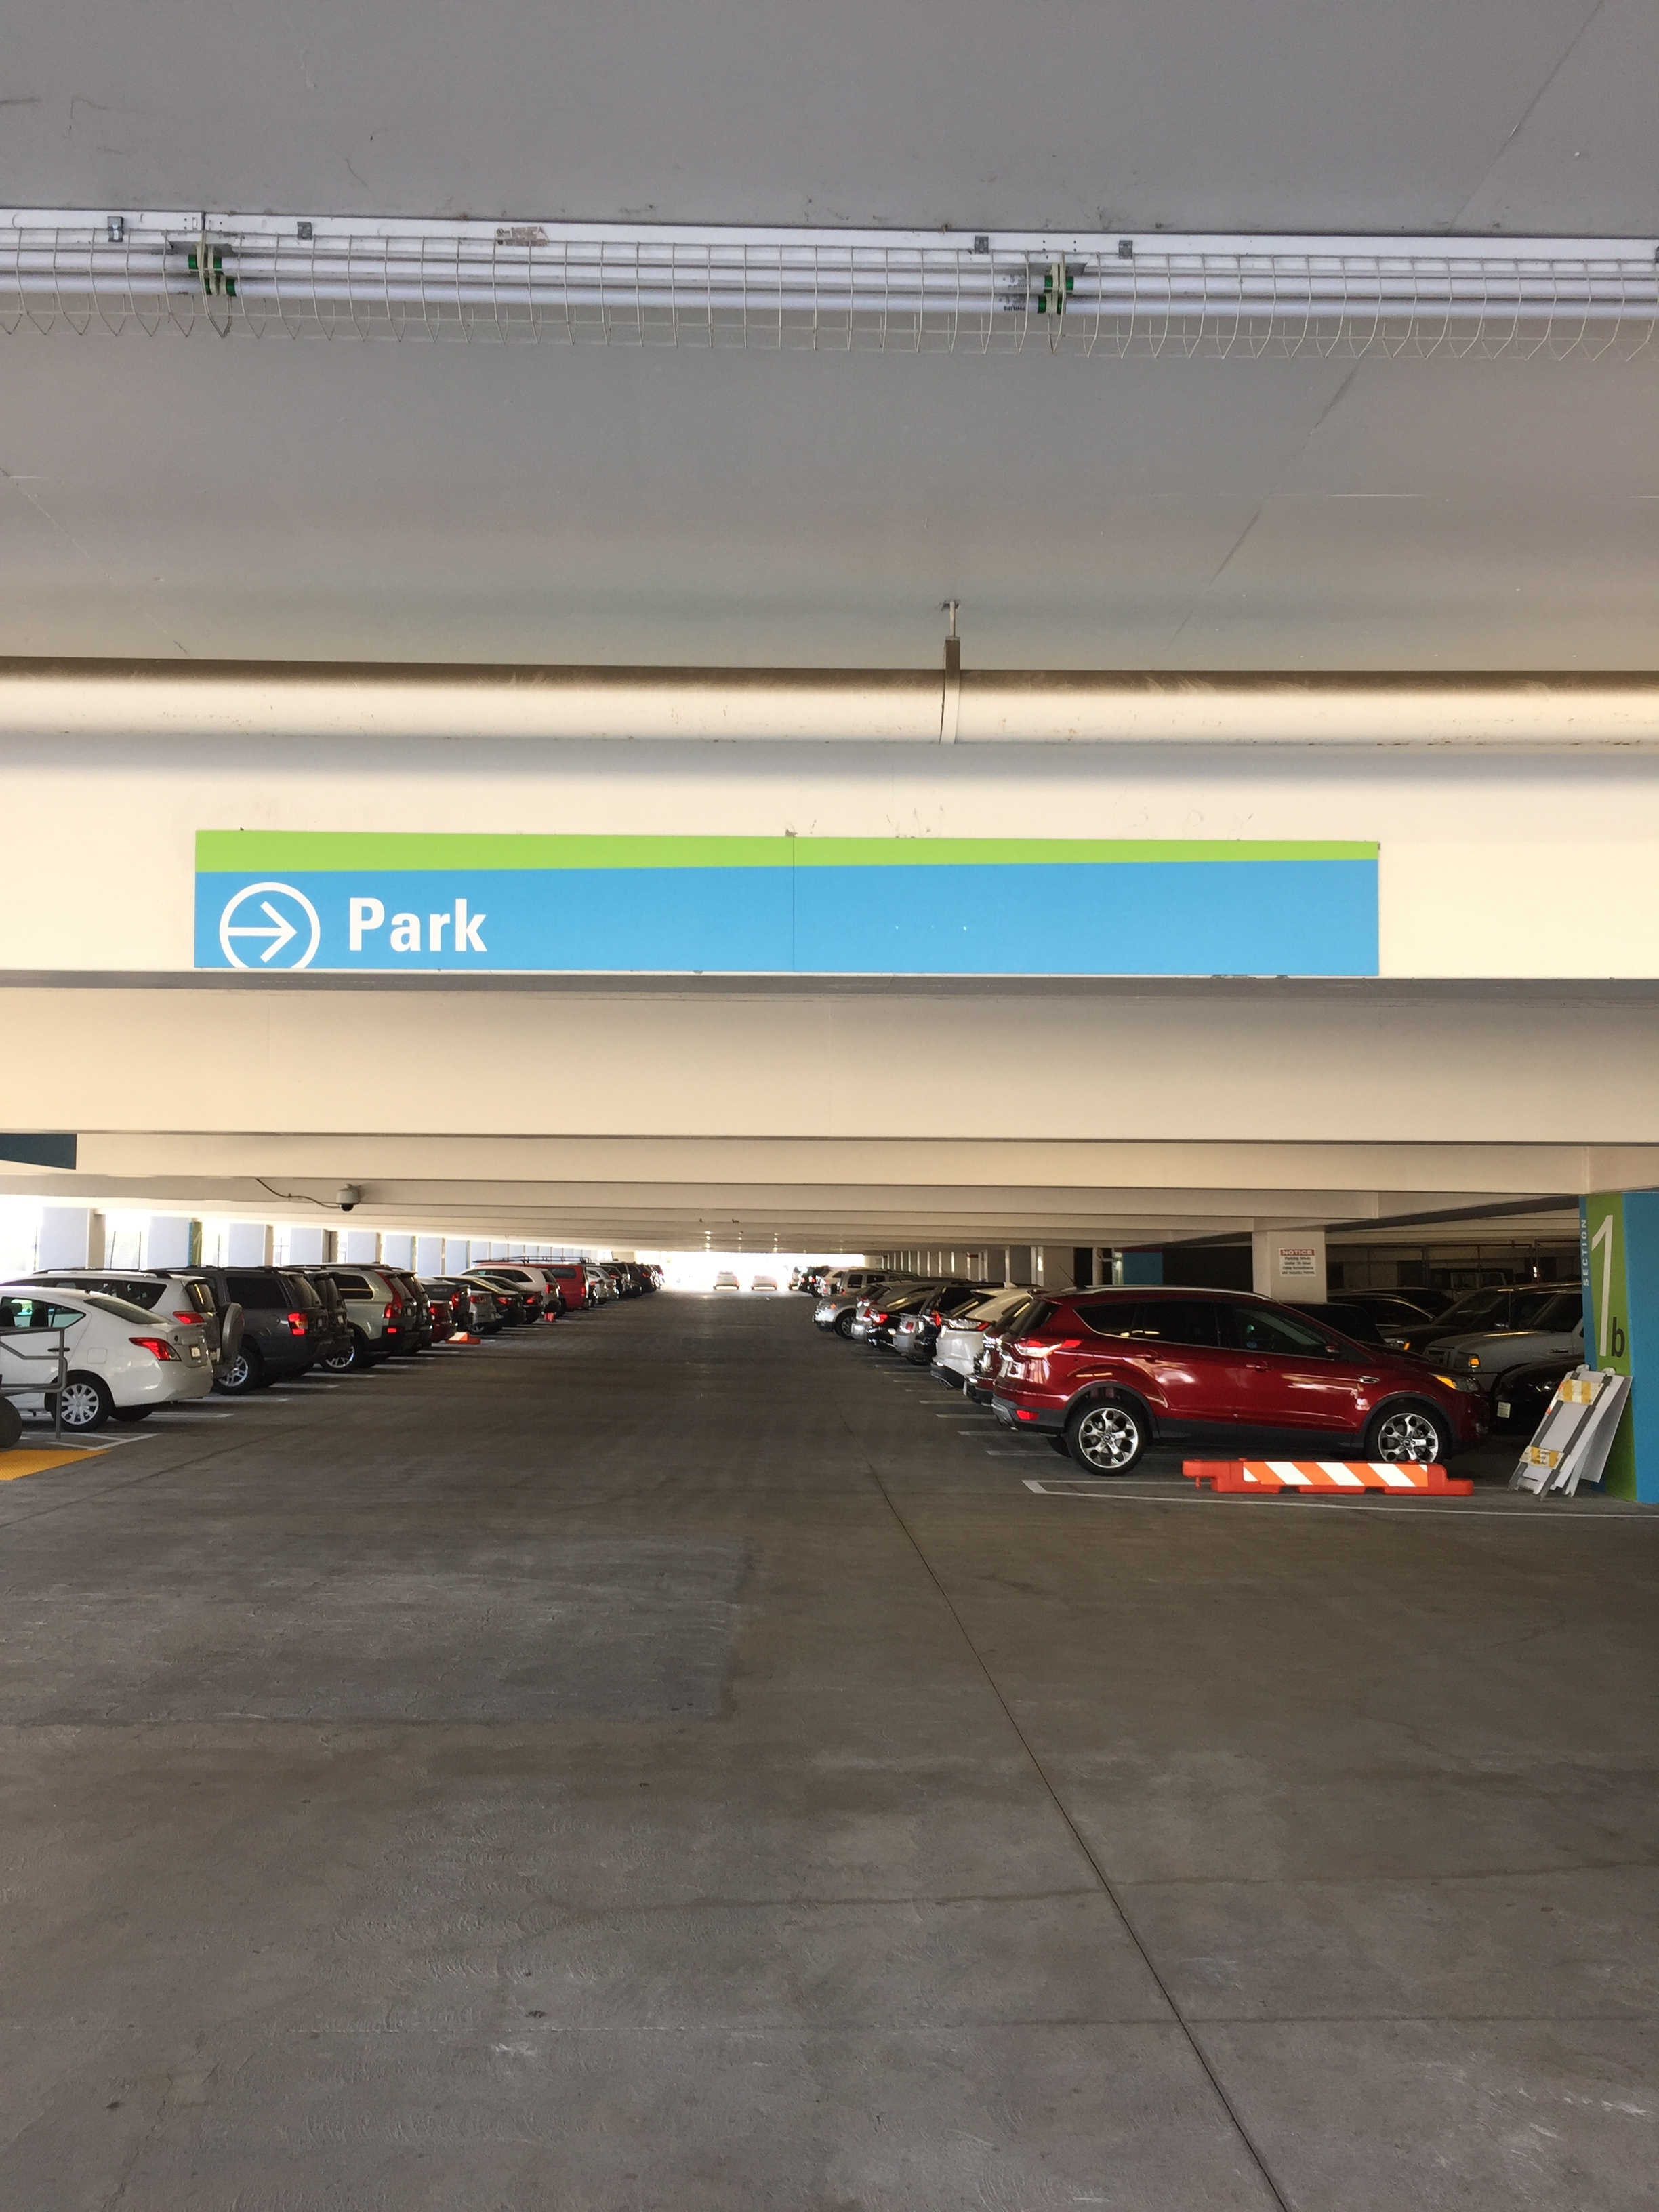 Parking Directional Sign